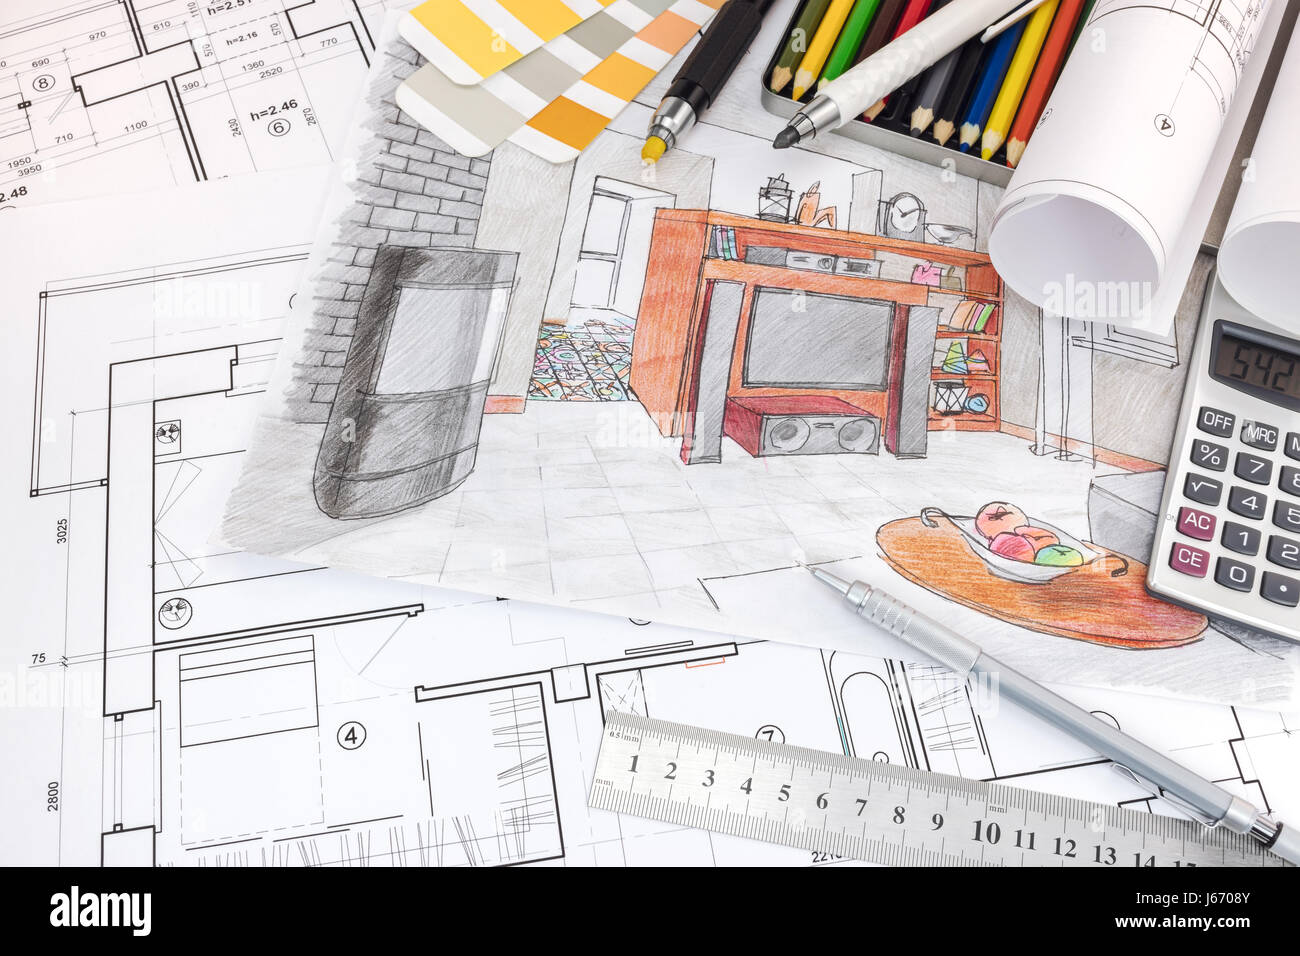 interior designer workplace with sketches of apartment and drawing tools stock image - Interior Design Sketches